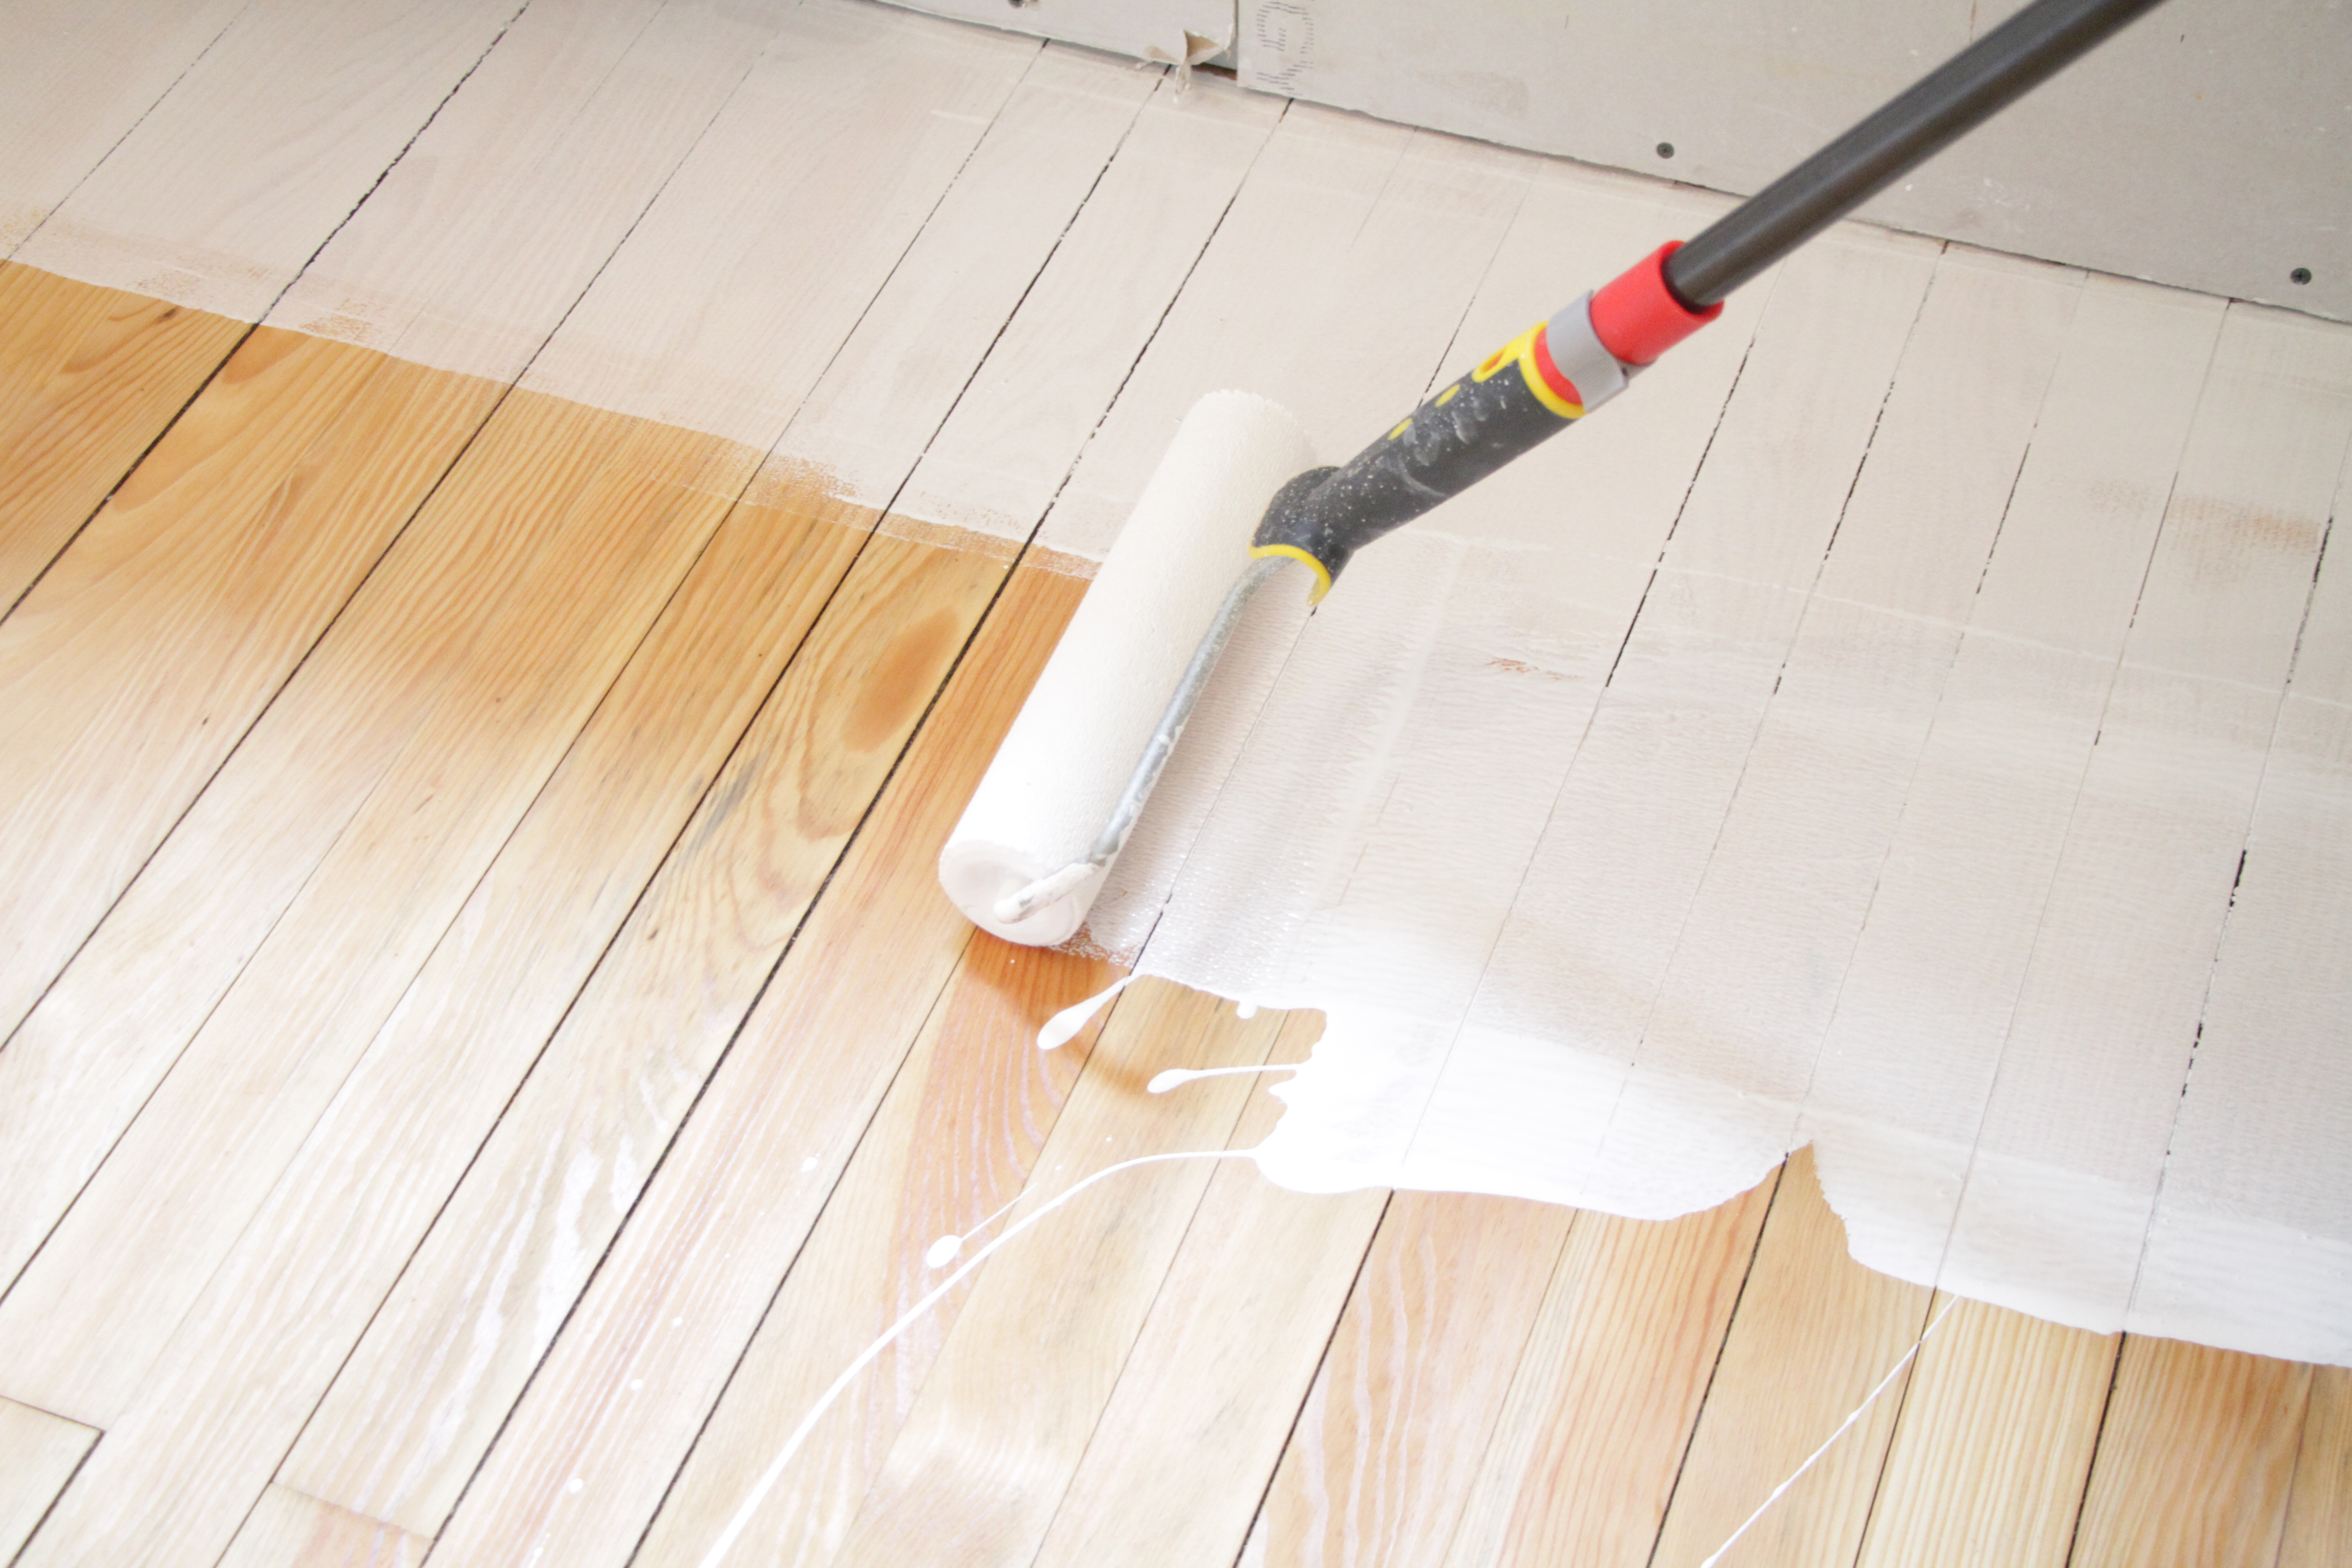 D corer un parquet sans n gliger sa protection love d co for Peindre sur du bois vernis sans poncer